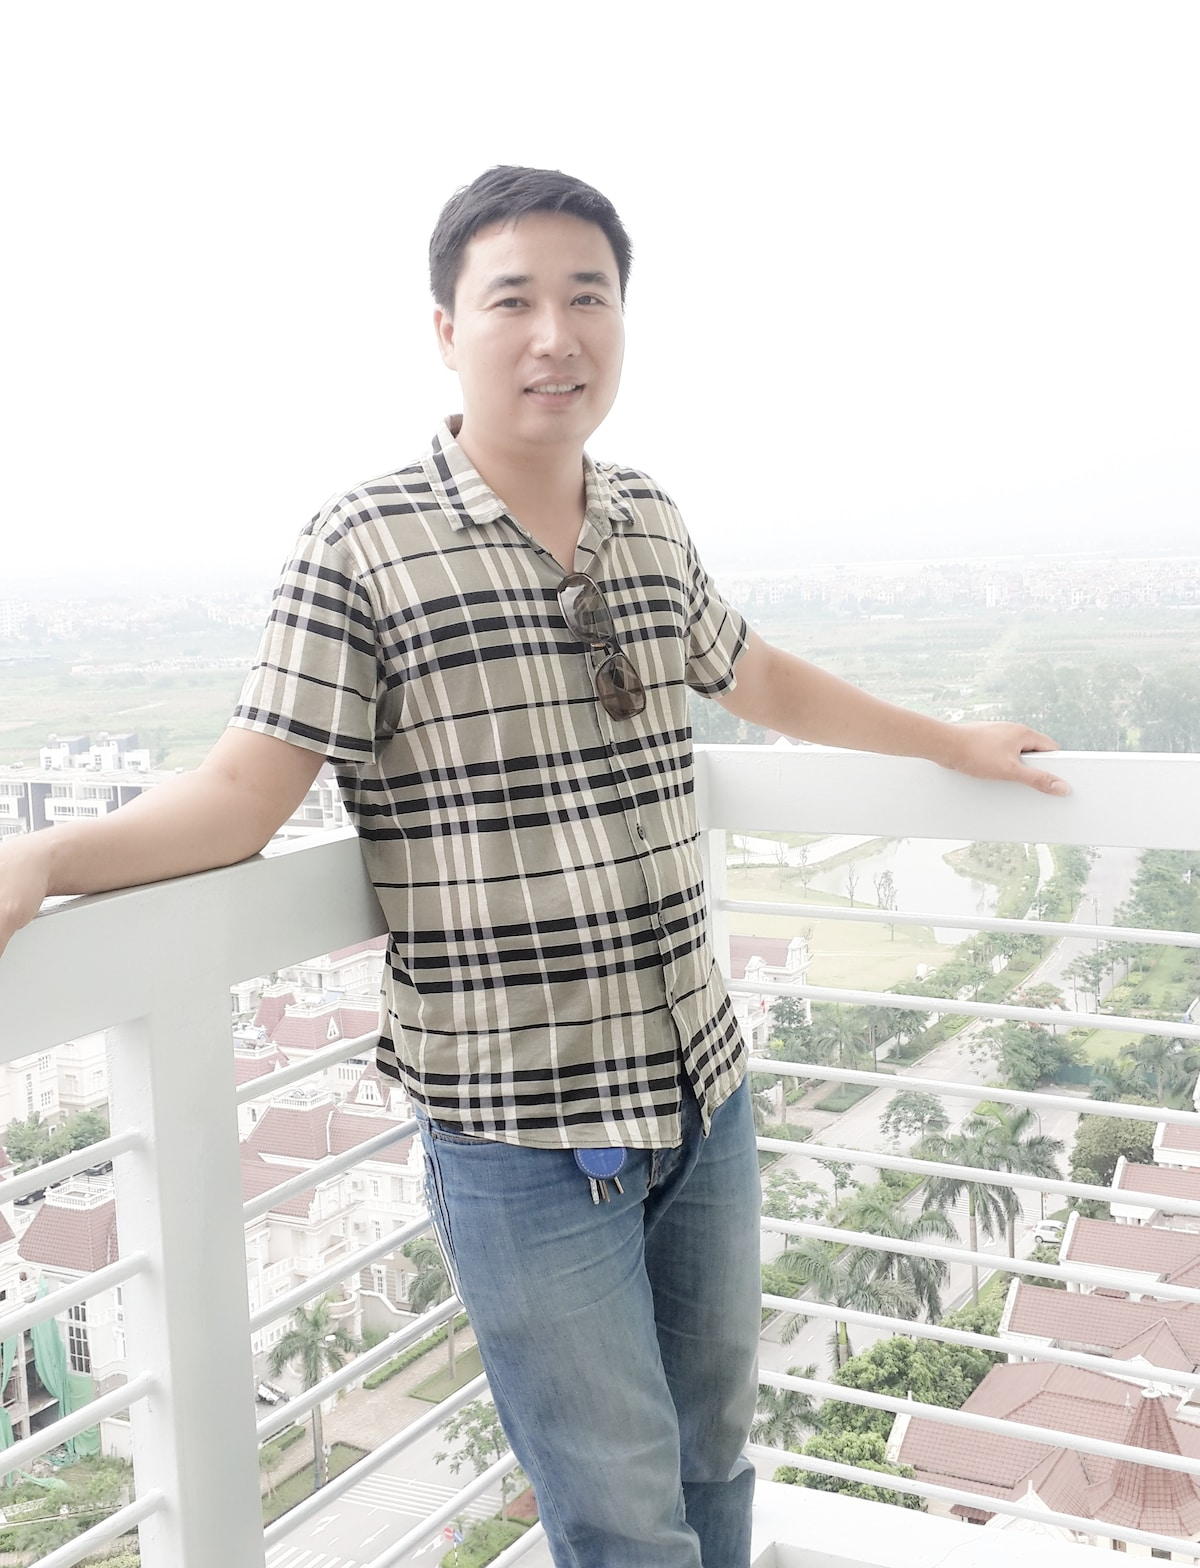 I'm Nam. I'm 36 year old. I'm living in Hanoi, Vie